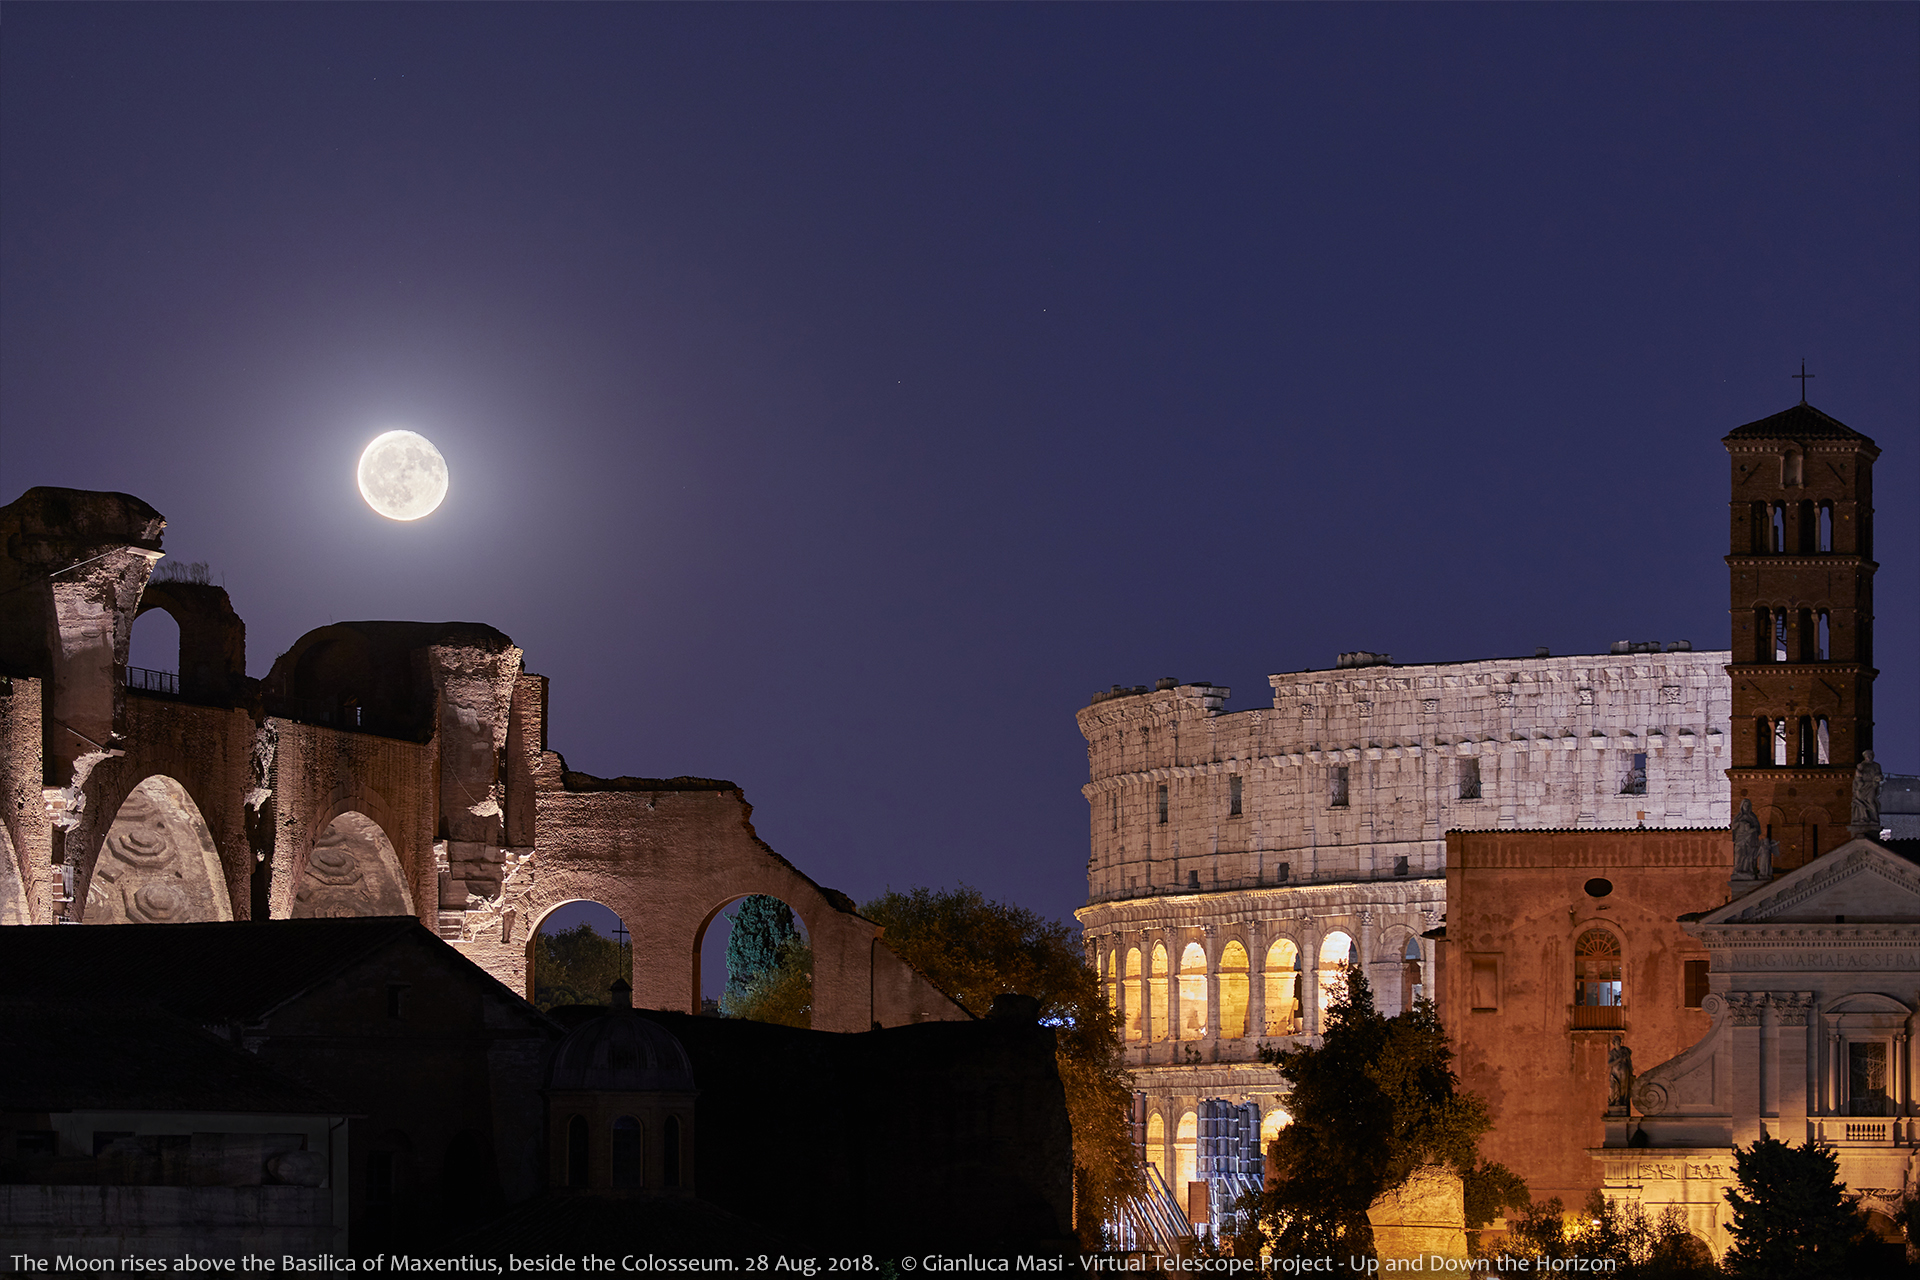 The Moon enters the scene on the Basilica of Maxentius , with the Colosseum on the right - 28 Aug. 2018